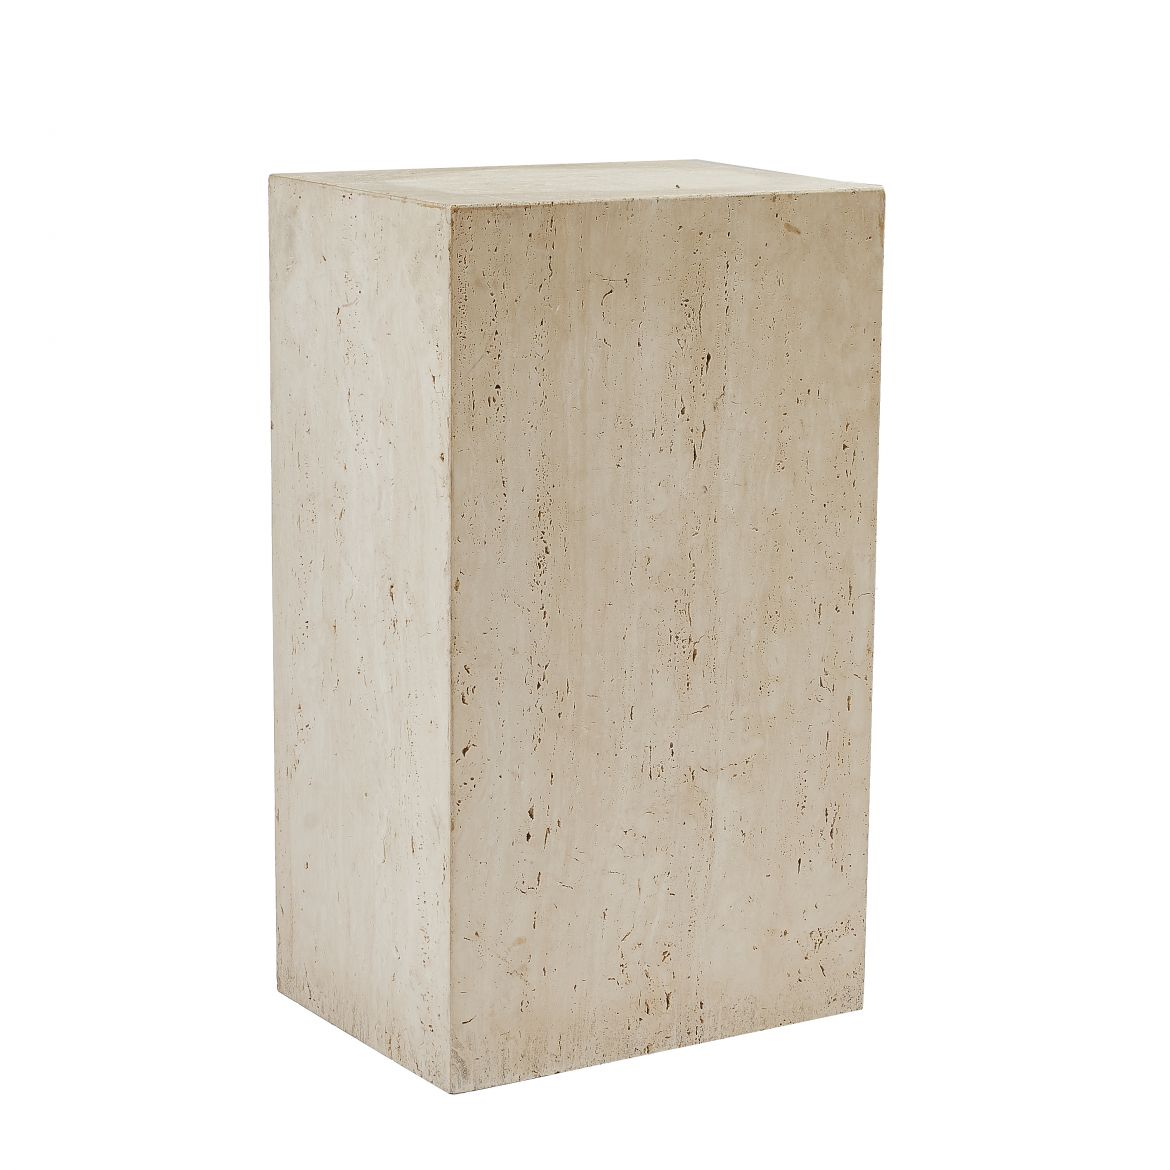 Italian Travertine Plinth